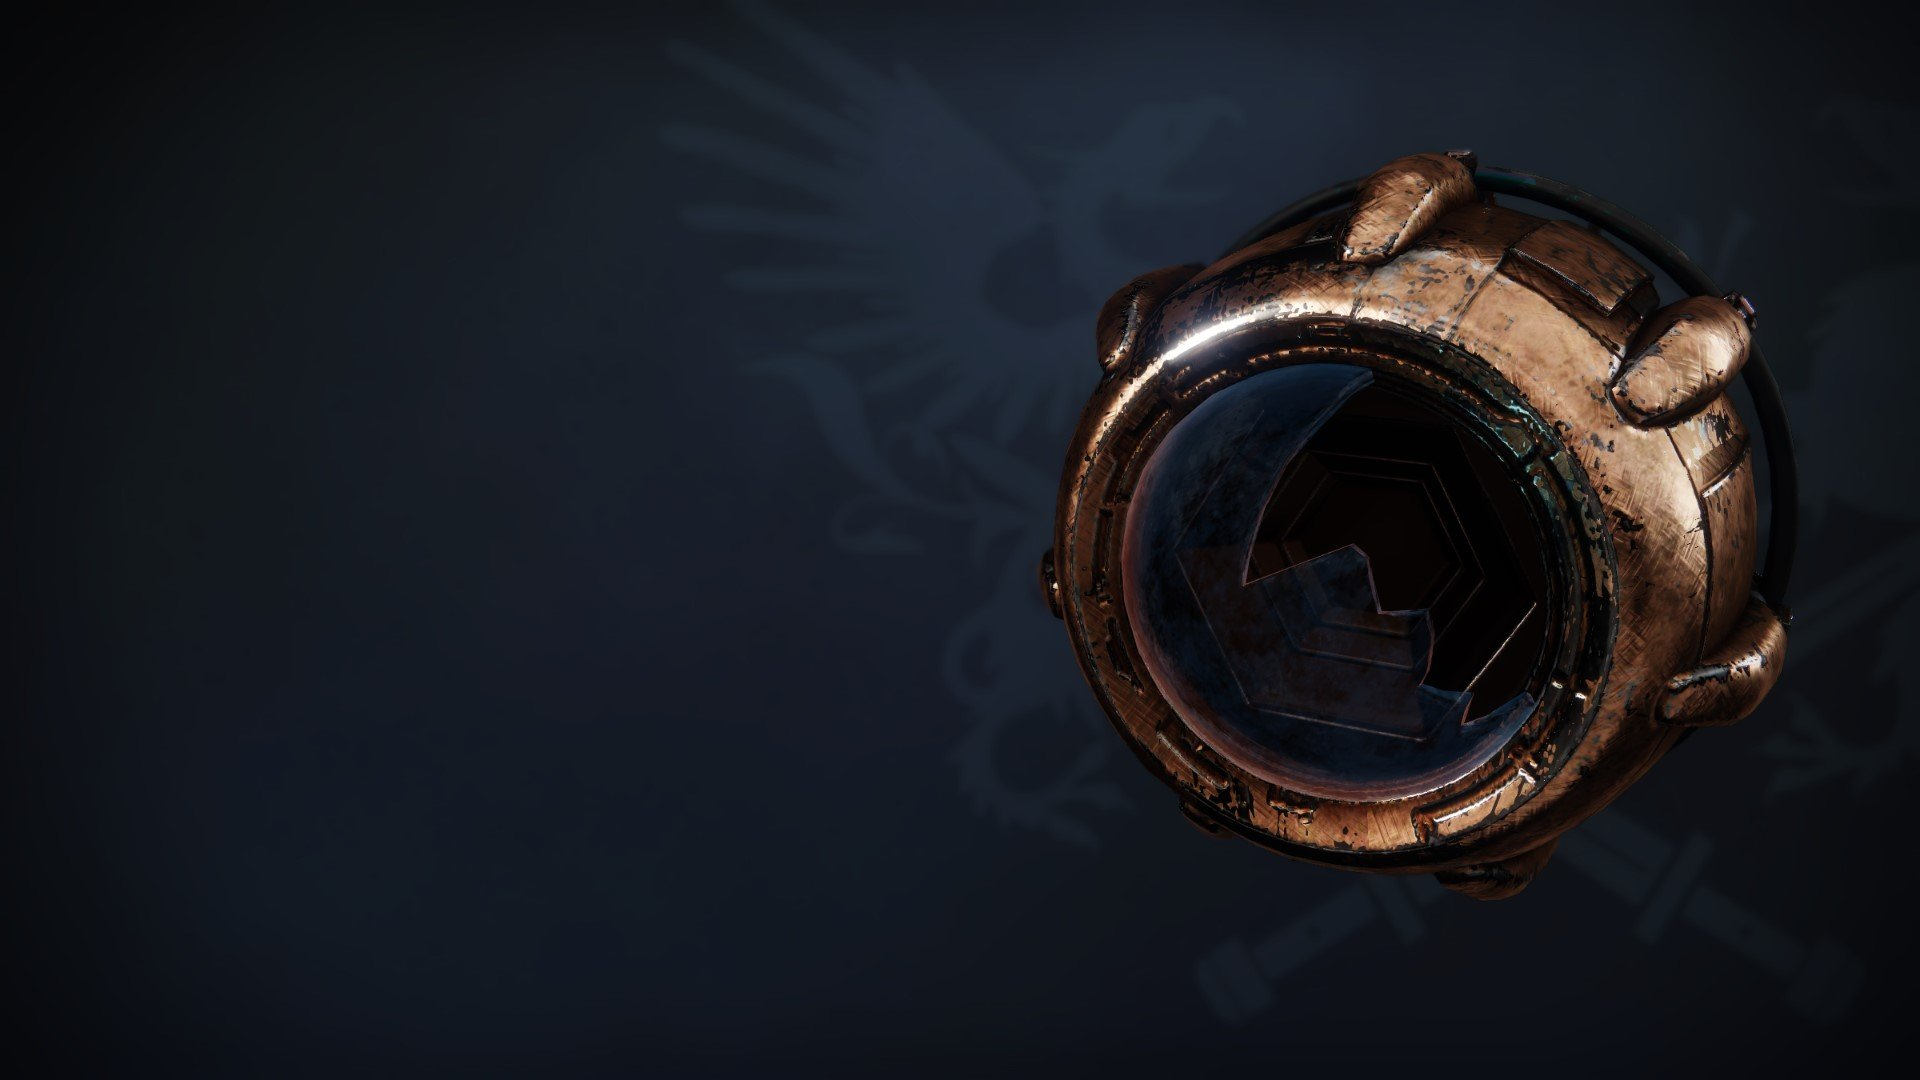 An in-game render of the The Gate Lord's Eye.